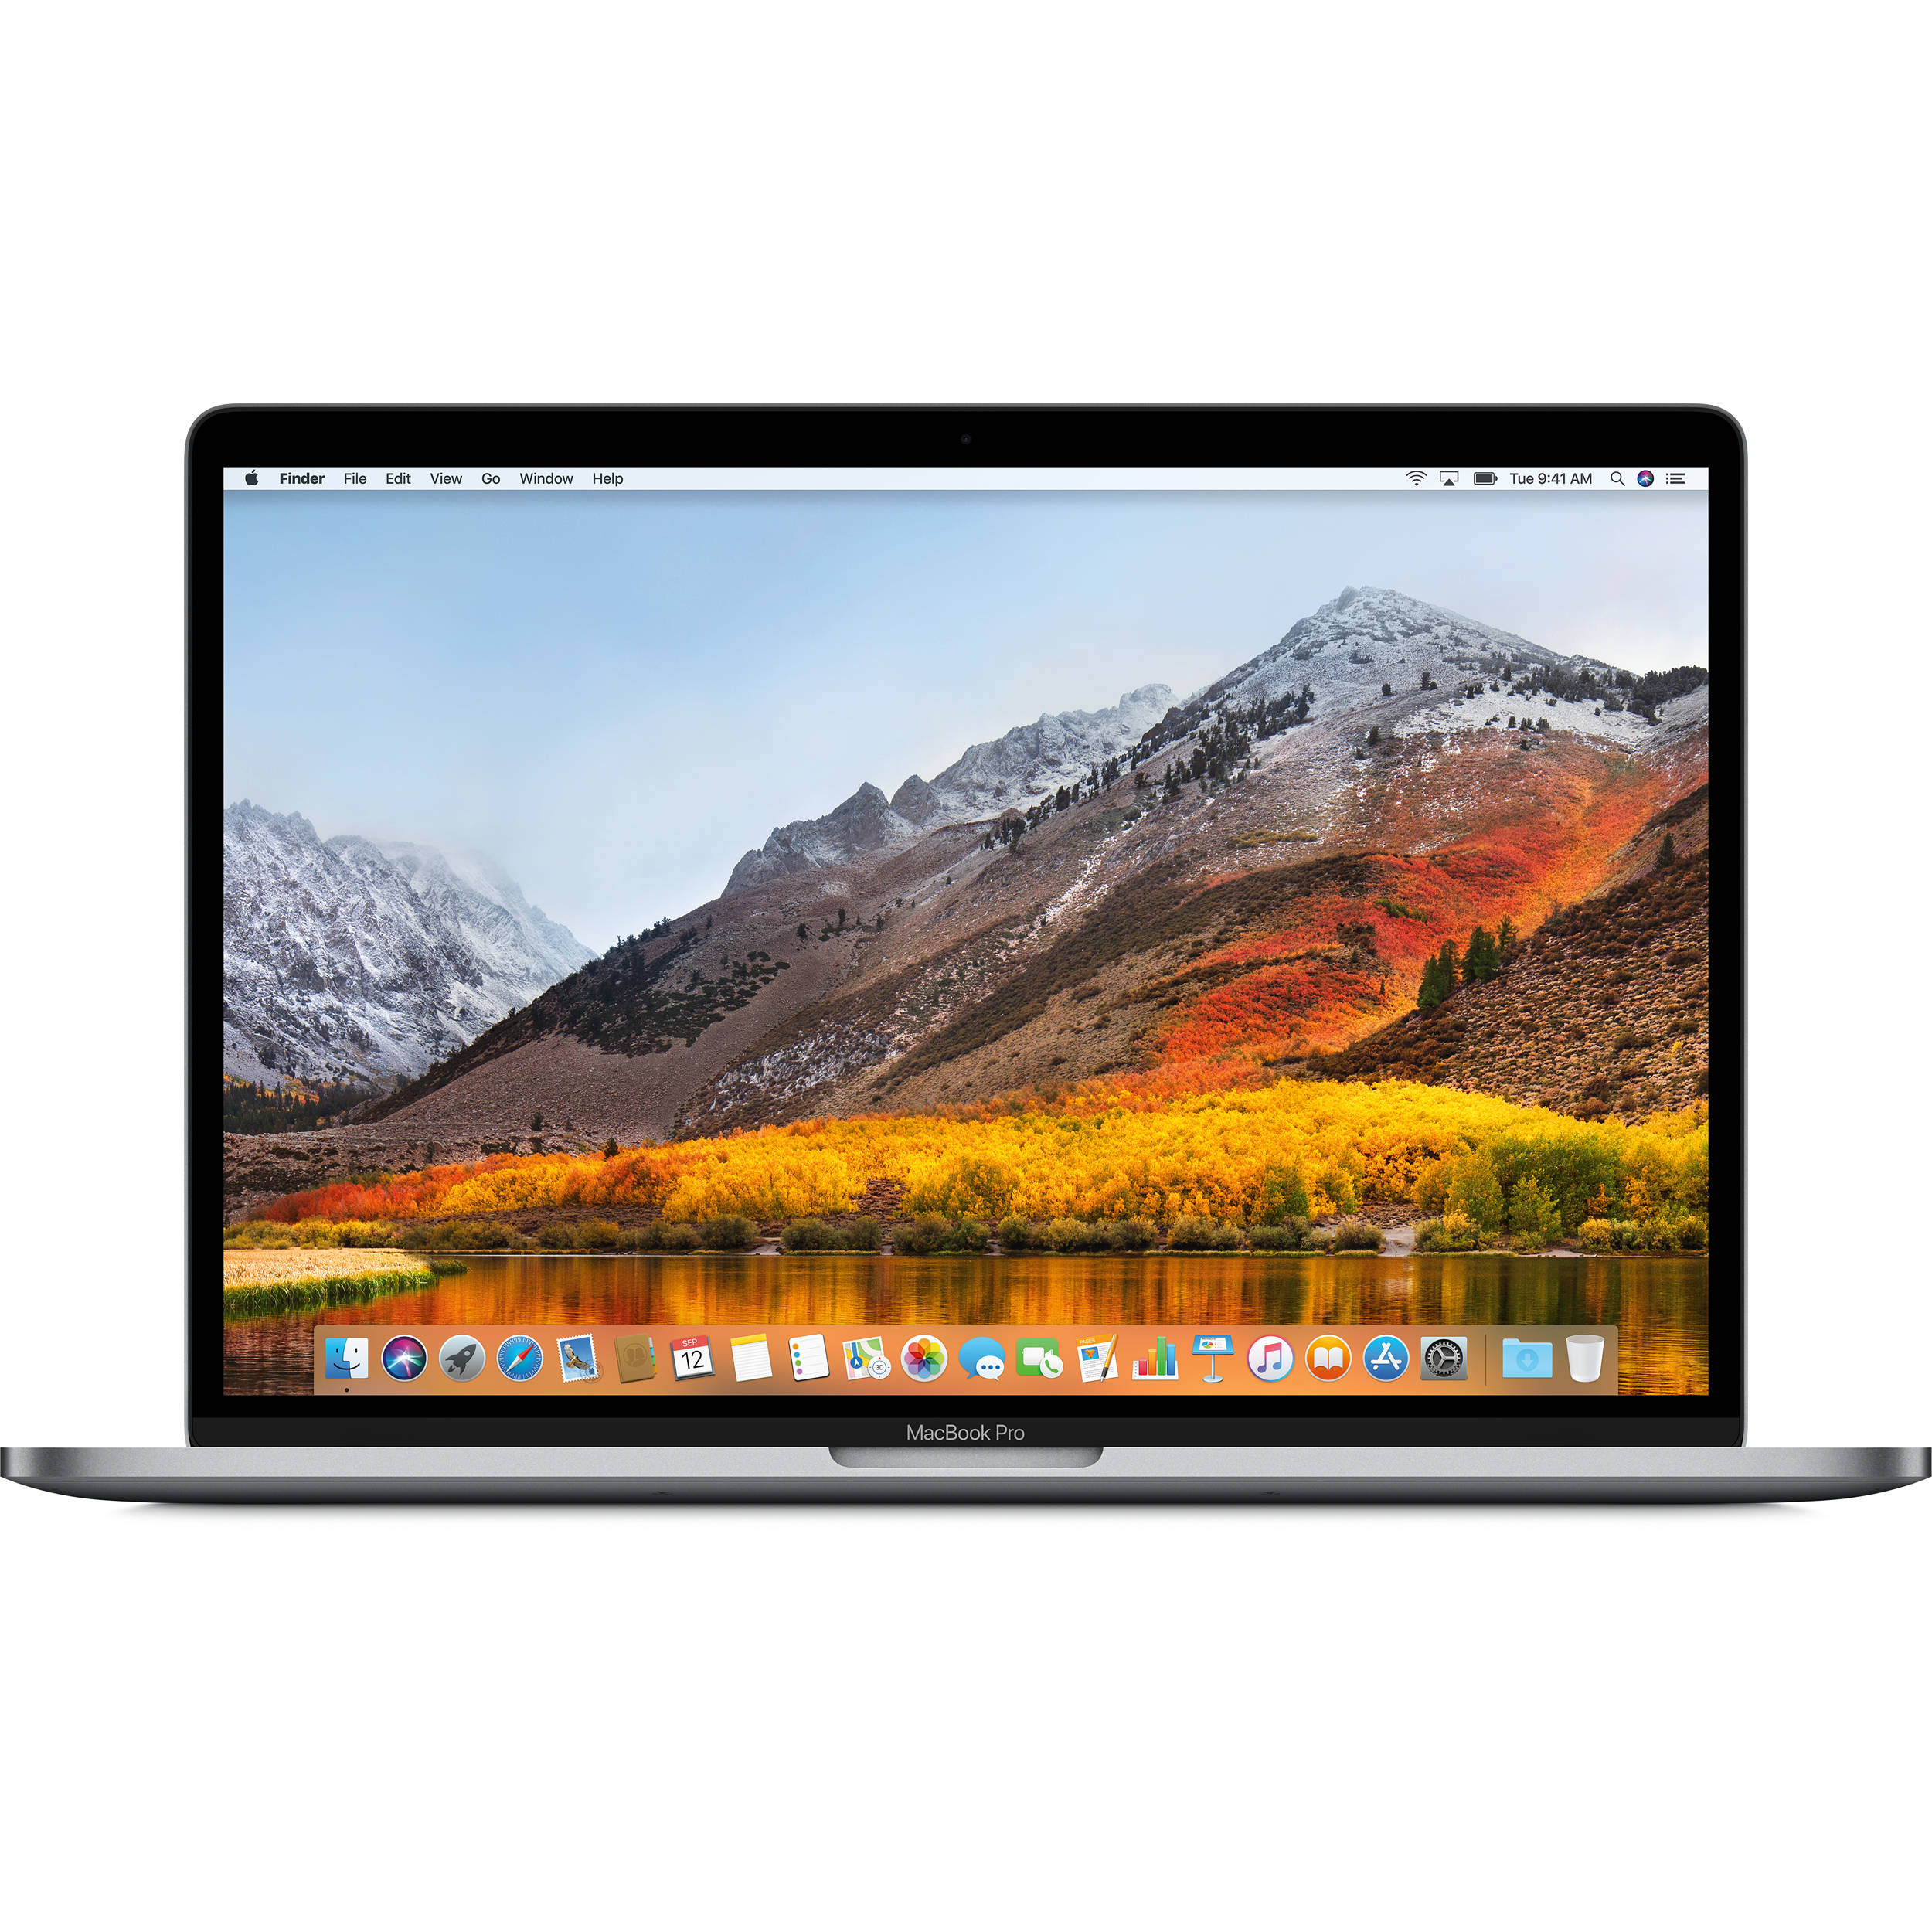 Apple 154 Macbook Pro With Touch Bar Z0v1 Mr9424 Bh Gammon Forum Electronics Microprocessors Freezeframe Flash Mid 2018